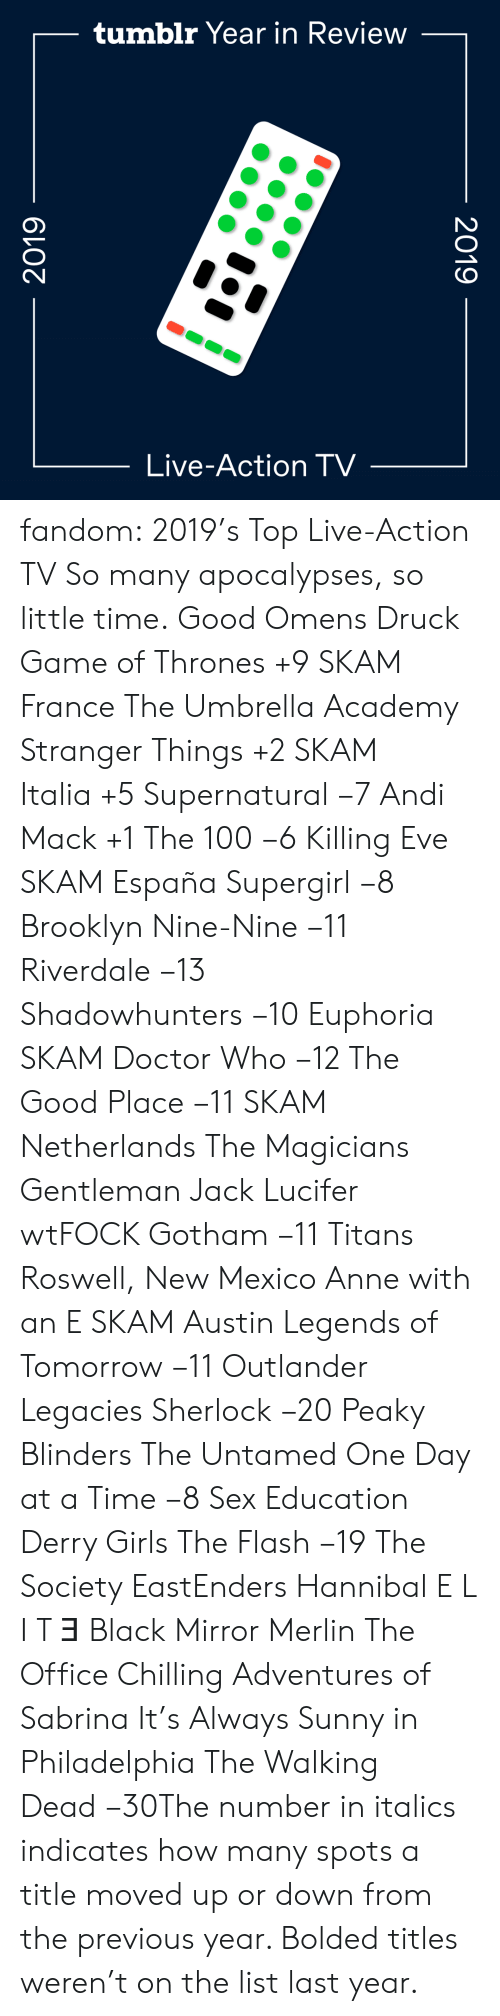 flash: tumblr Year in Review  Live-Action TV-  2019  2019 fandom:  2019's Top Live-Action TV  So many apocalypses, so little time.  Good Omens  Druck  Game of Thrones +9  SKAM France  The Umbrella Academy  Stranger Things +2  SKAM Italia +5  Supernatural −7  Andi Mack +1  The 100 −6  Killing Eve   SKAM España  Supergirl −8  Brooklyn Nine-Nine −11  Riverdale −13  Shadowhunters −10  Euphoria  SKAM  Doctor Who −12  The Good Place −11  SKAM Netherlands  The Magicians  Gentleman Jack  Lucifer  wtFOCK  Gotham −11  Titans  Roswell, New Mexico  Anne with an E  SKAM Austin  Legends of Tomorrow −11  Outlander  Legacies  Sherlock −20  Peaky Blinders  The Untamed  One Day at a Time −8  Sex Education  Derry Girls  The Flash −19  The Society  EastEnders  Hannibal  E L I T Ǝ  Black Mirror  Merlin  The Office  Chilling Adventures of Sabrina  It's Always Sunny in Philadelphia The Walking Dead −30The number in italics indicates how many spots a title moved up or down from the previous year. Bolded titles weren't on the list last year.